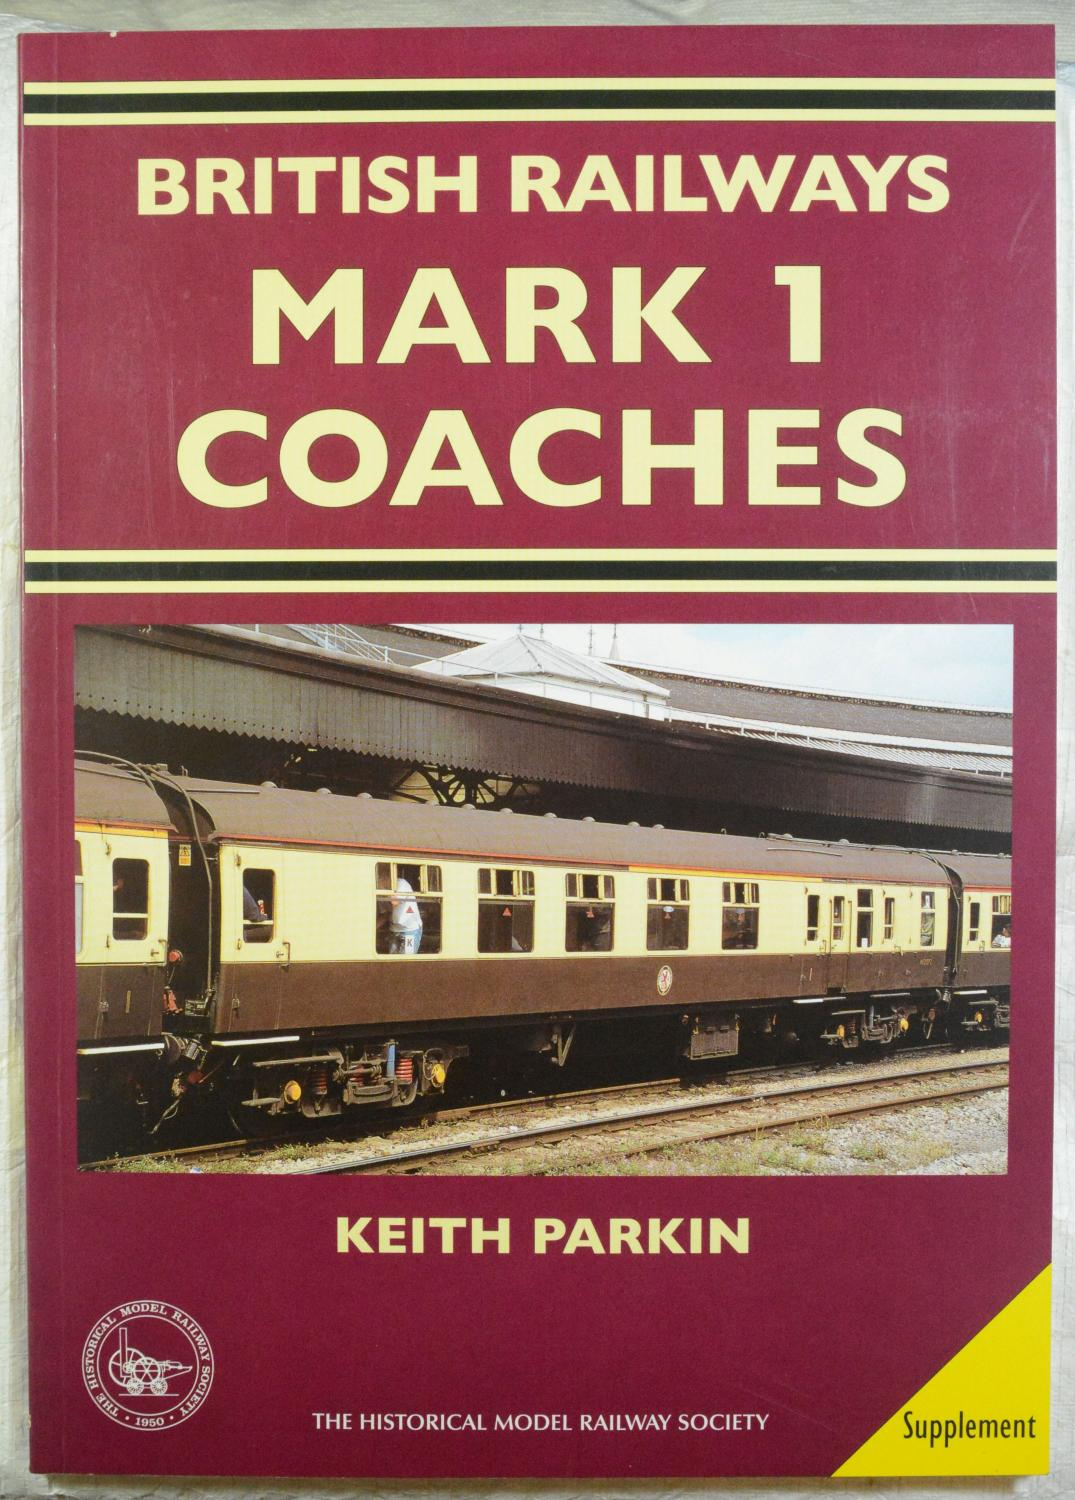 British Railways Mark 1 Coaches (Supplement)